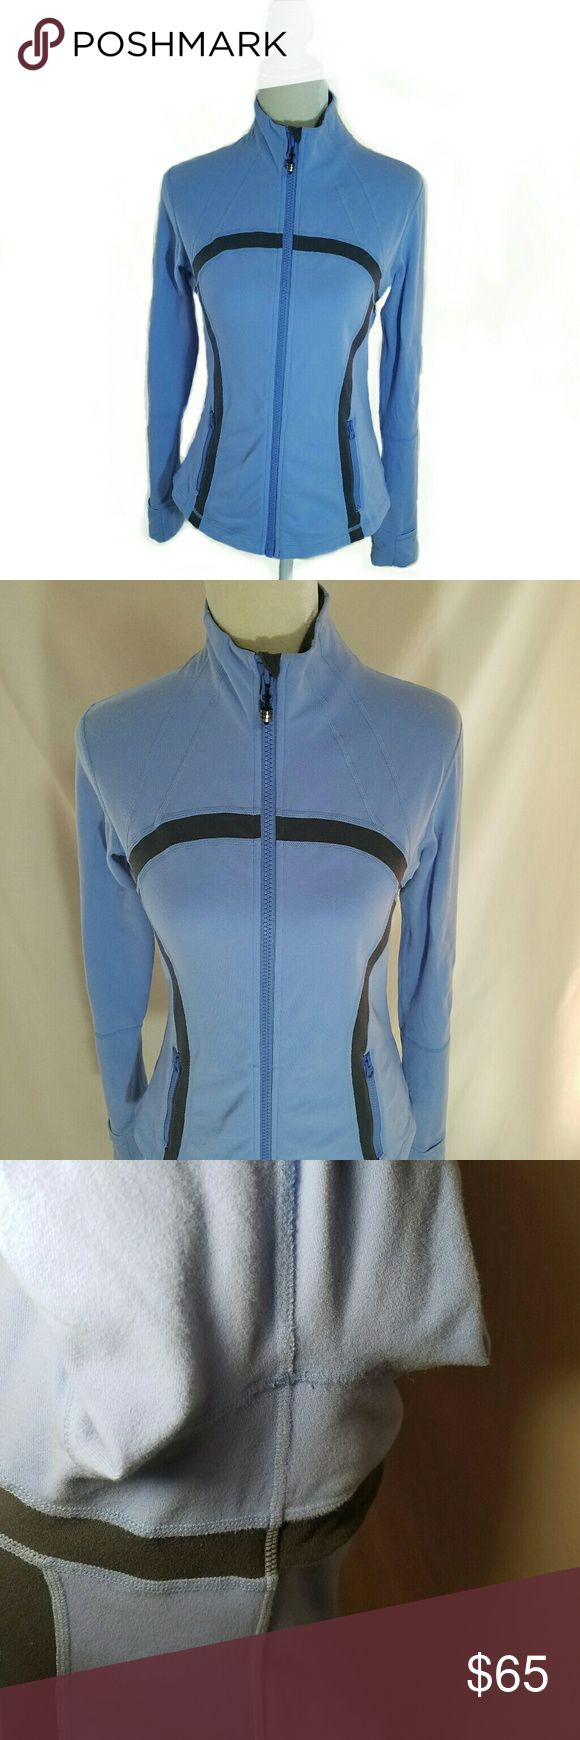 Lululemon Define Jacket Light blue with gray omega. Full on luon. Back vent. Thumb holes and fold over cuffs. Structurally in great condition. There is some pilling (I've definitely seen far worse) see photos. 3rd photo shows armpit under bright light for better detail. lululemon athletica Jackets & Coats